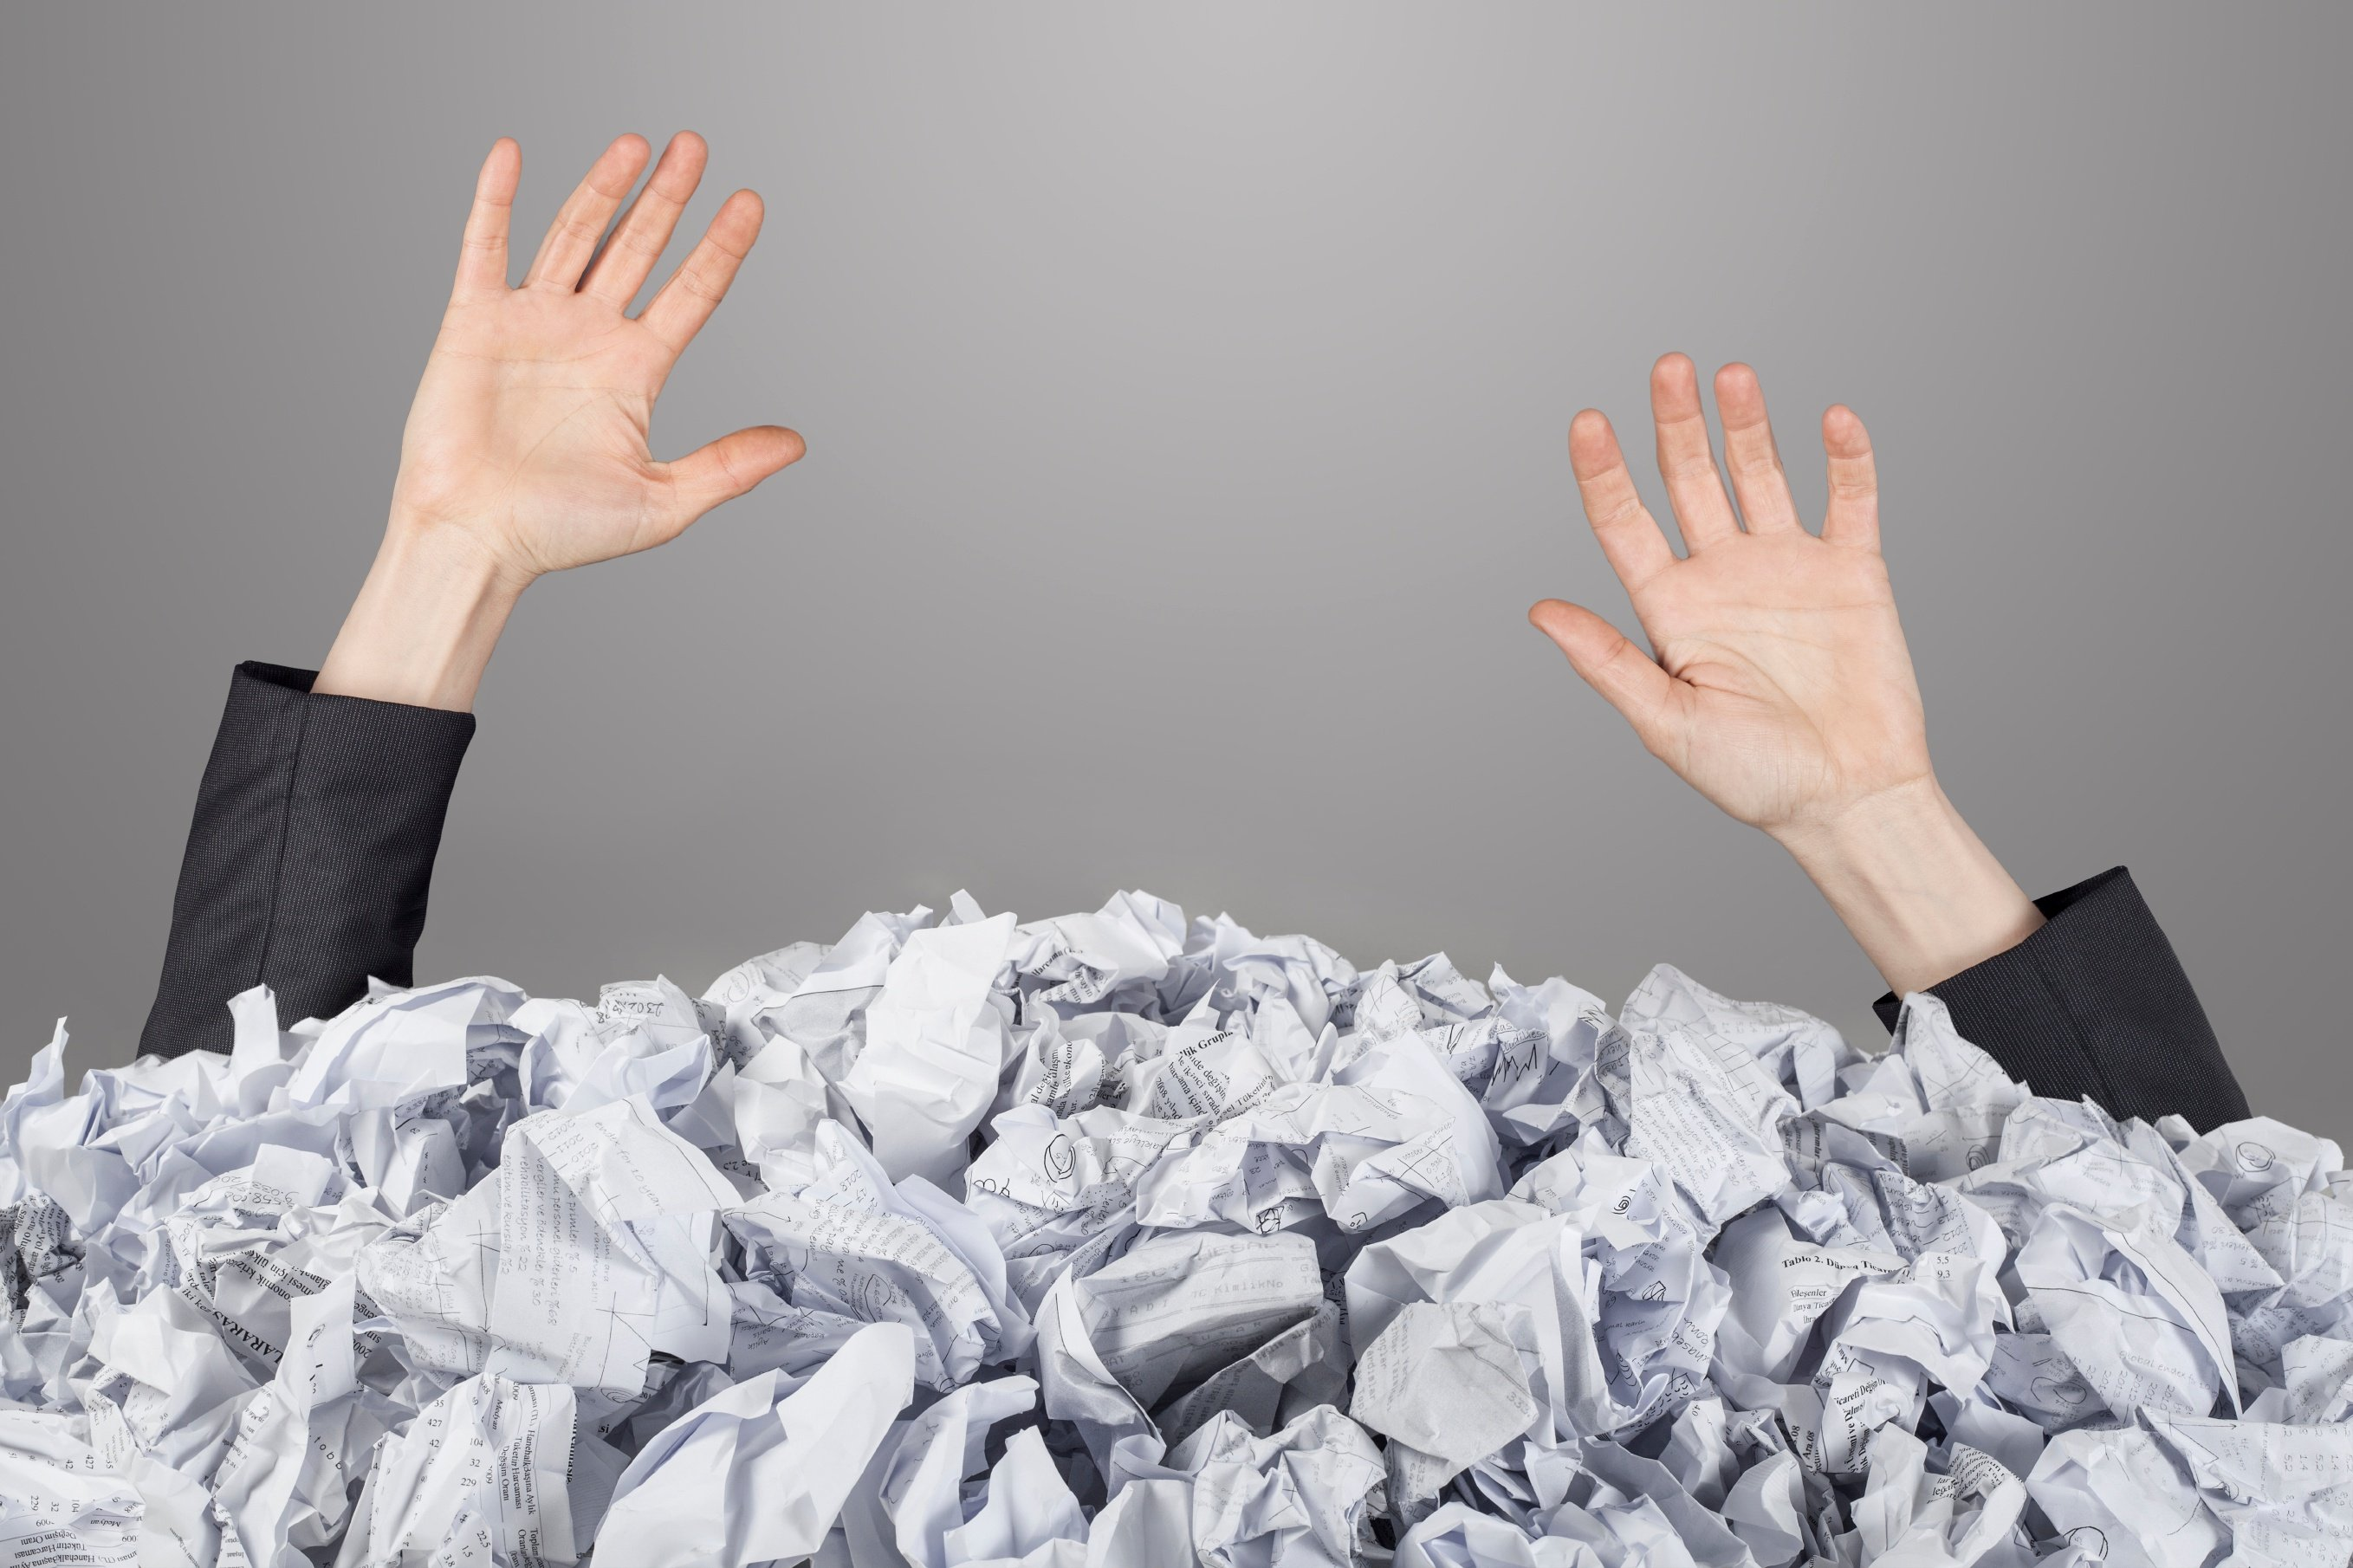 Hands-reach-out-from-big-heap-of-crumpled-papers-000023637922_Large.jpg